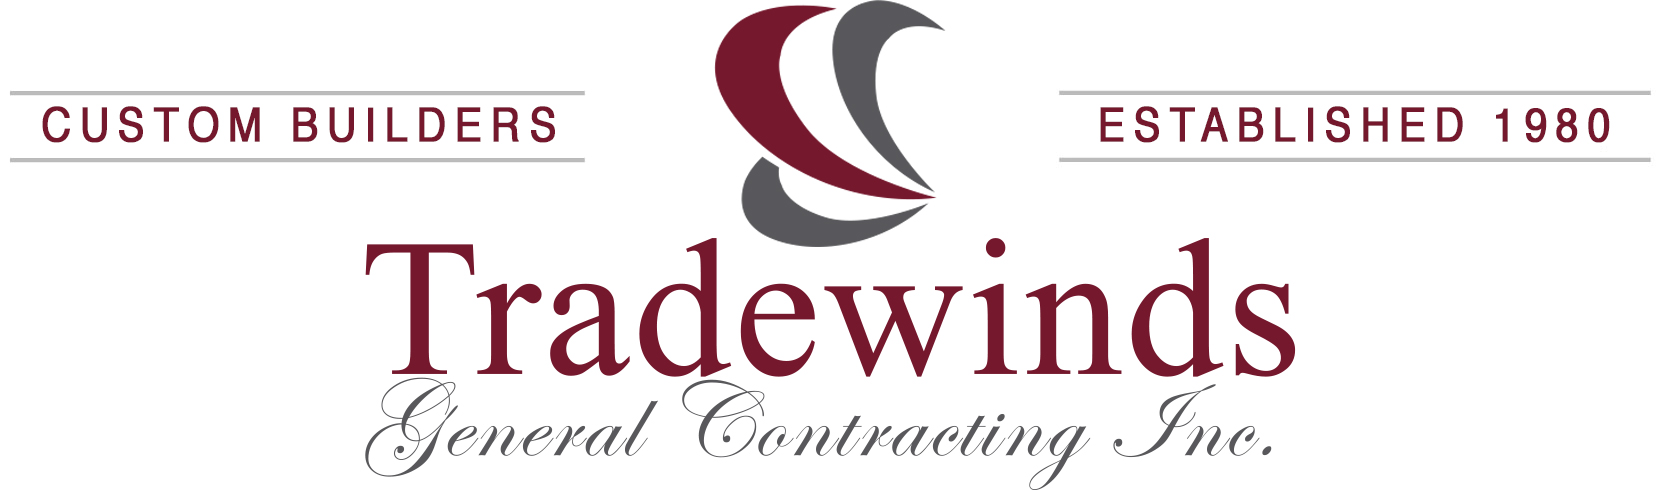 Tradewinds General Contracting | Custom Builders